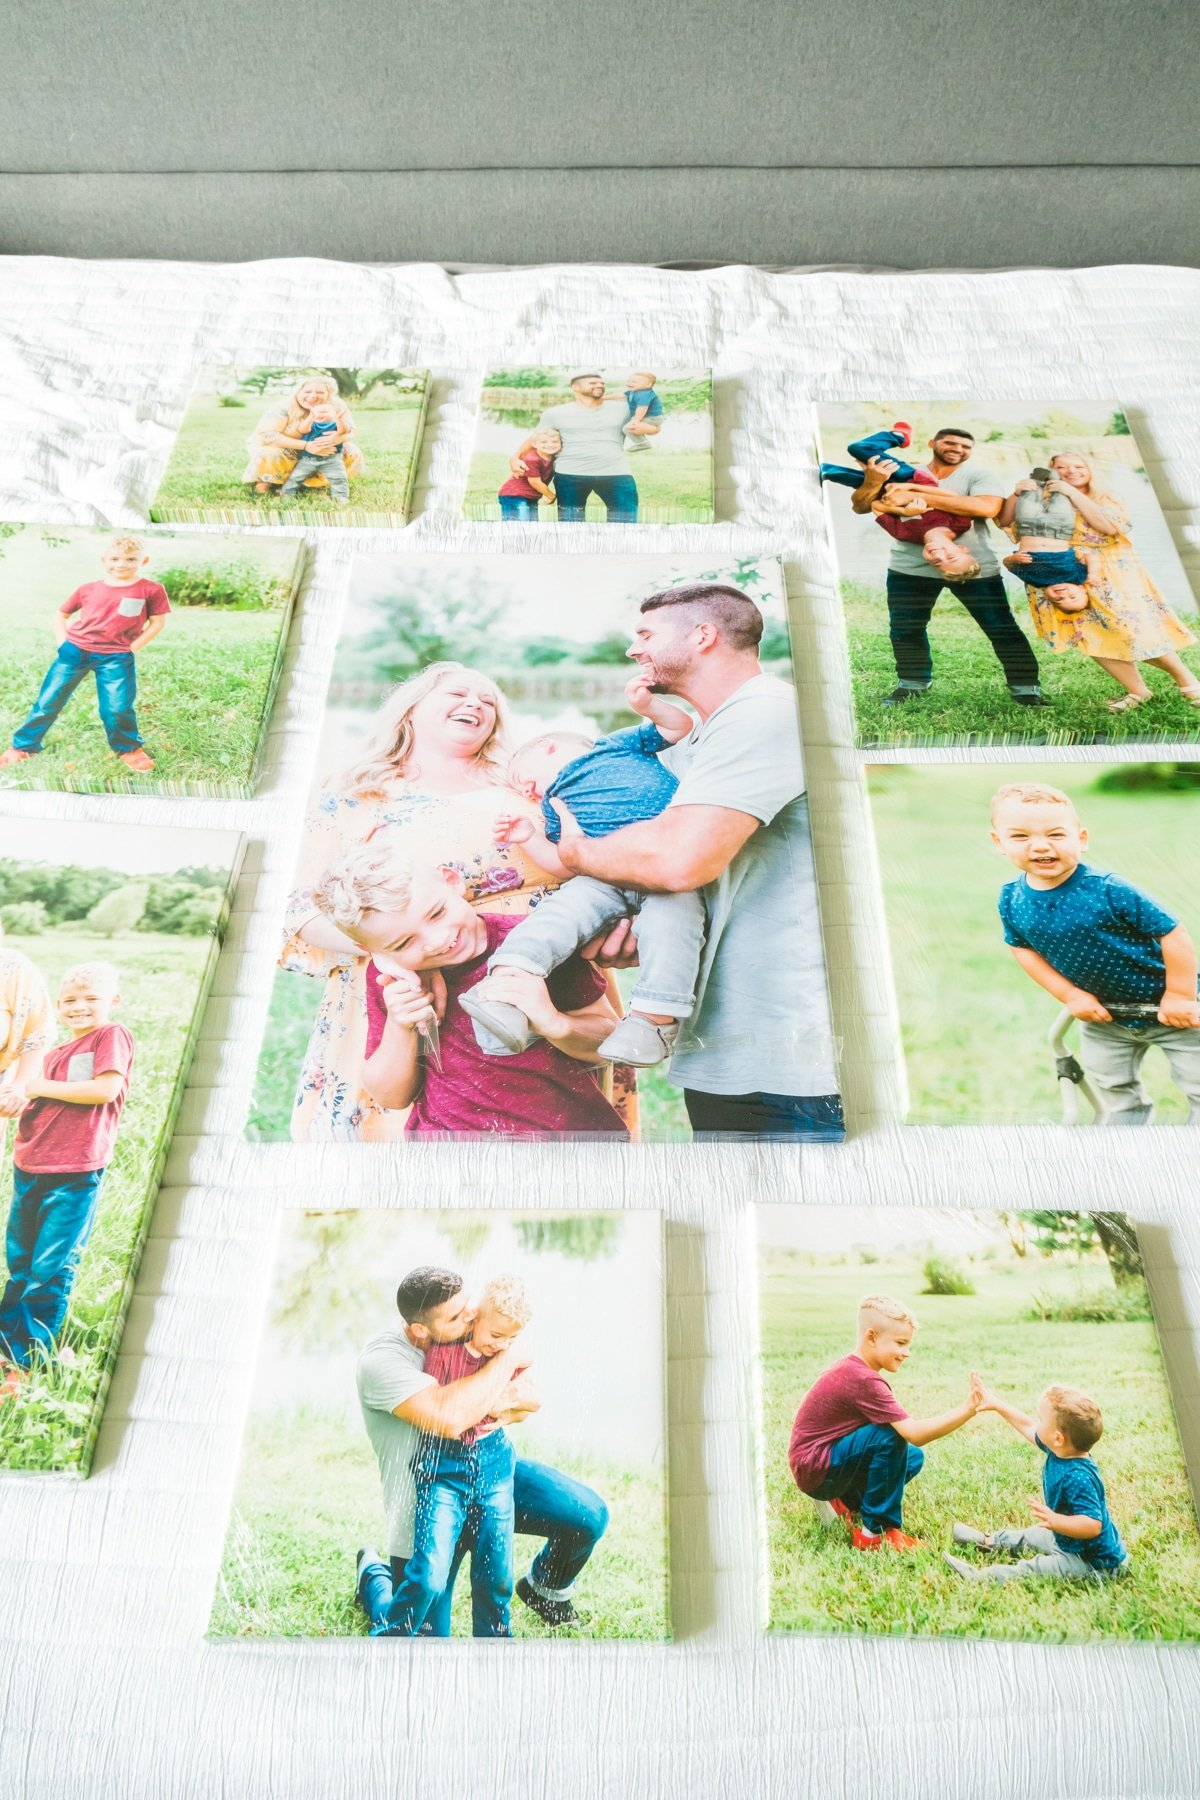 Photo canvases laid out on a bed